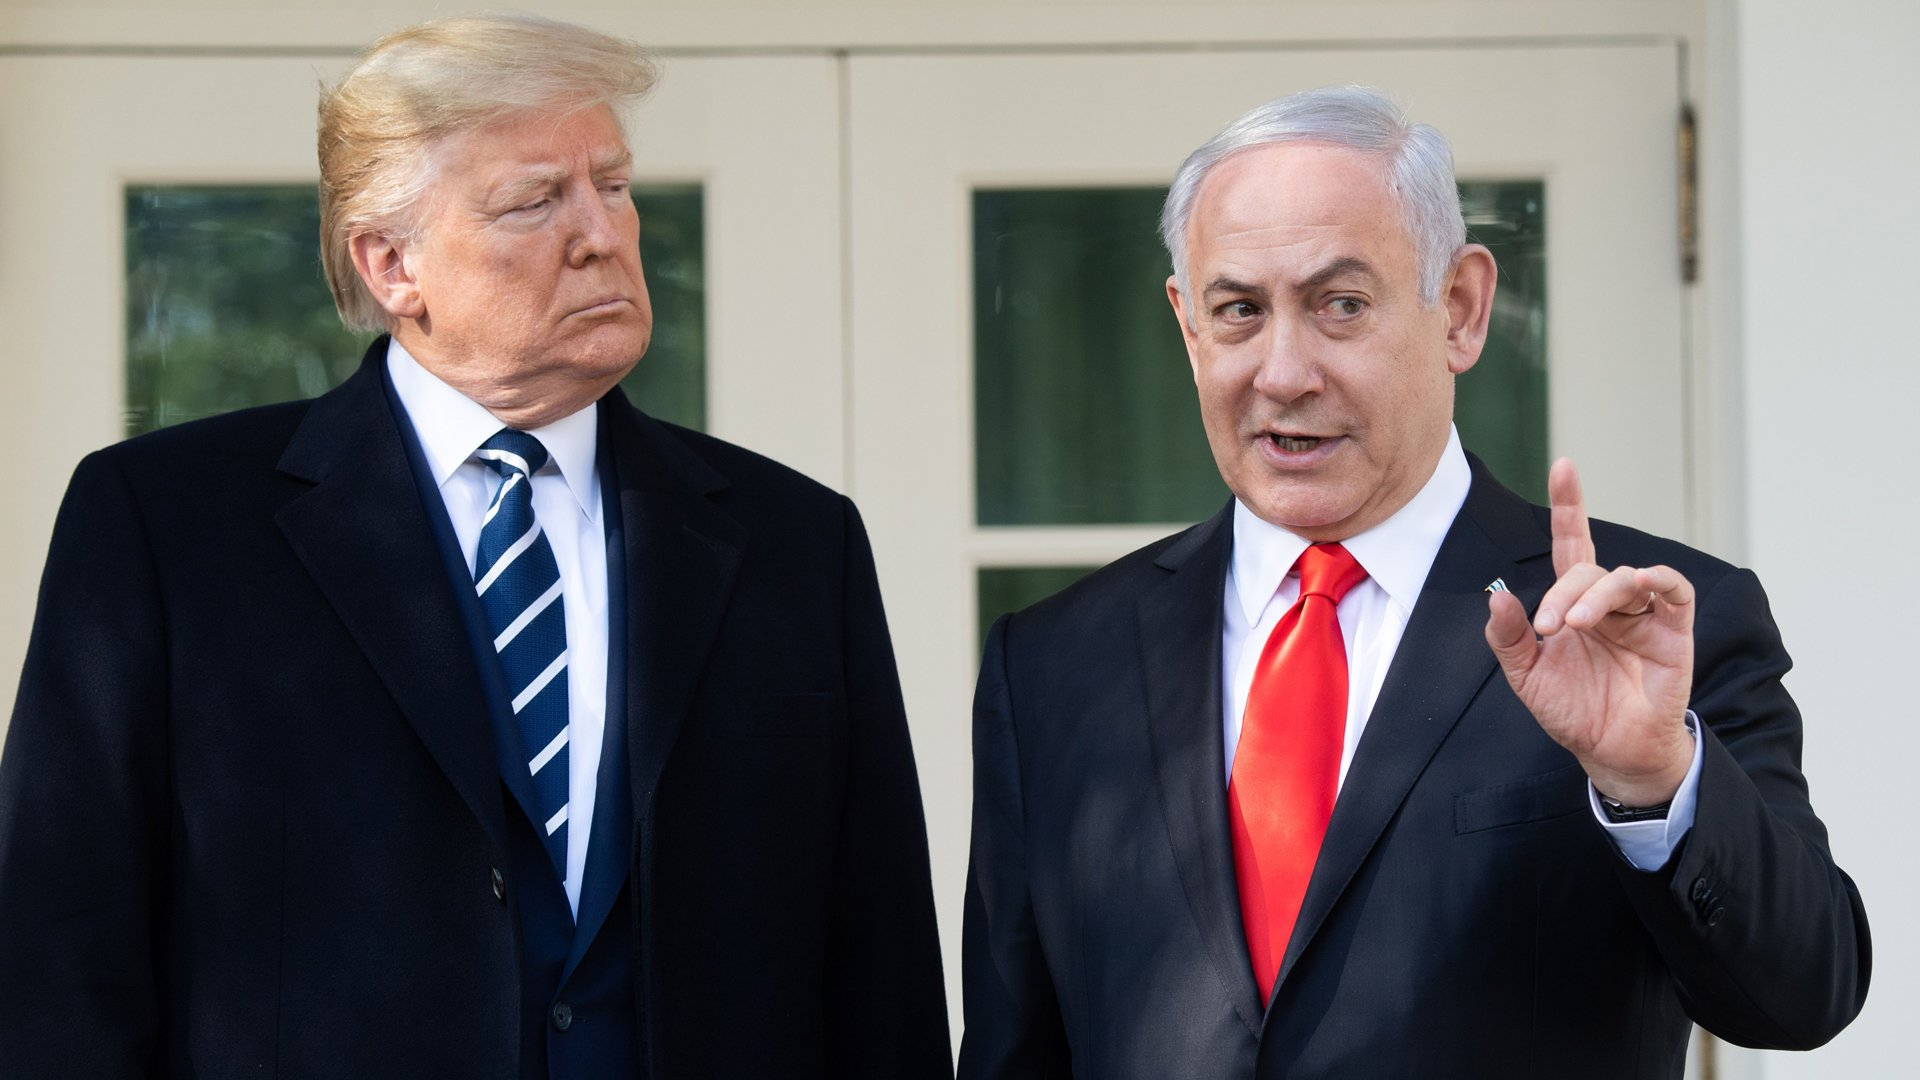 US President Donald Trump and Israeli Prime Minister Benjamin Netanyahu (R) speak to the press on the West Wing Colonnade prior to meetings at the White House in Washington, DC, January 27, 2020. (Credit: SAUL LOEB/AFP via Getty Images)